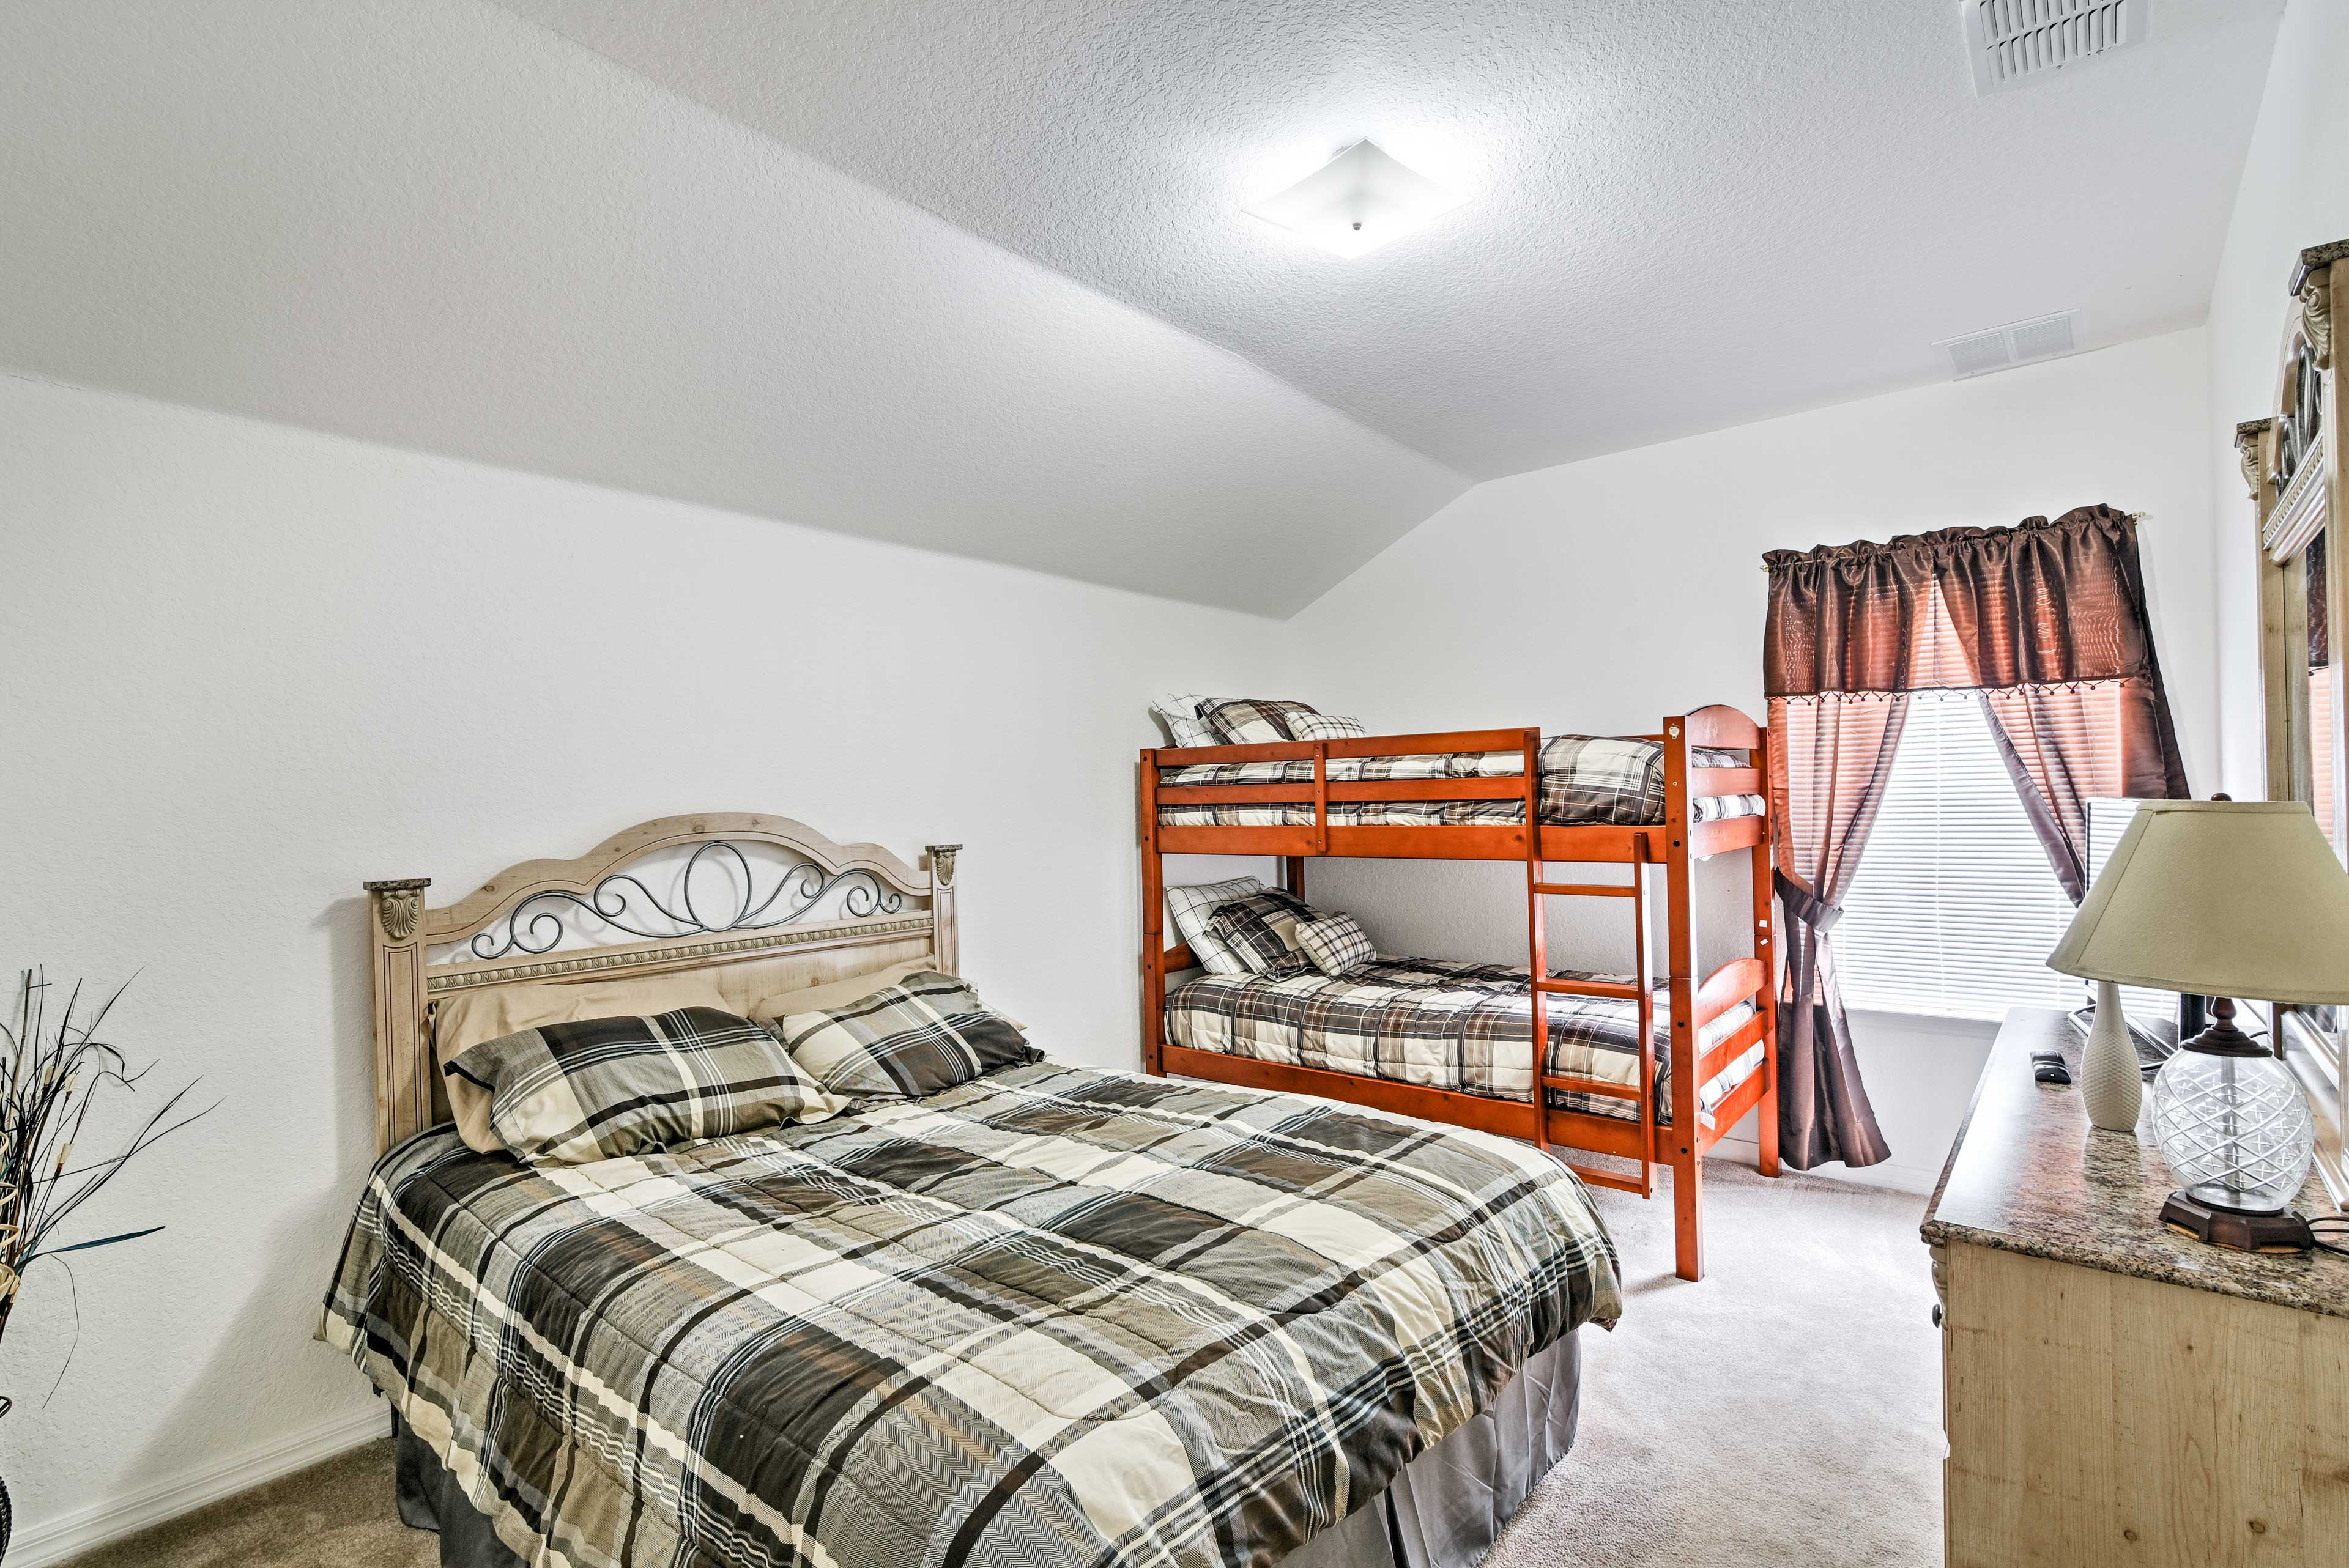 The spacious fourth bedroom has a queen bed and a twin-over-twin bunk bed.